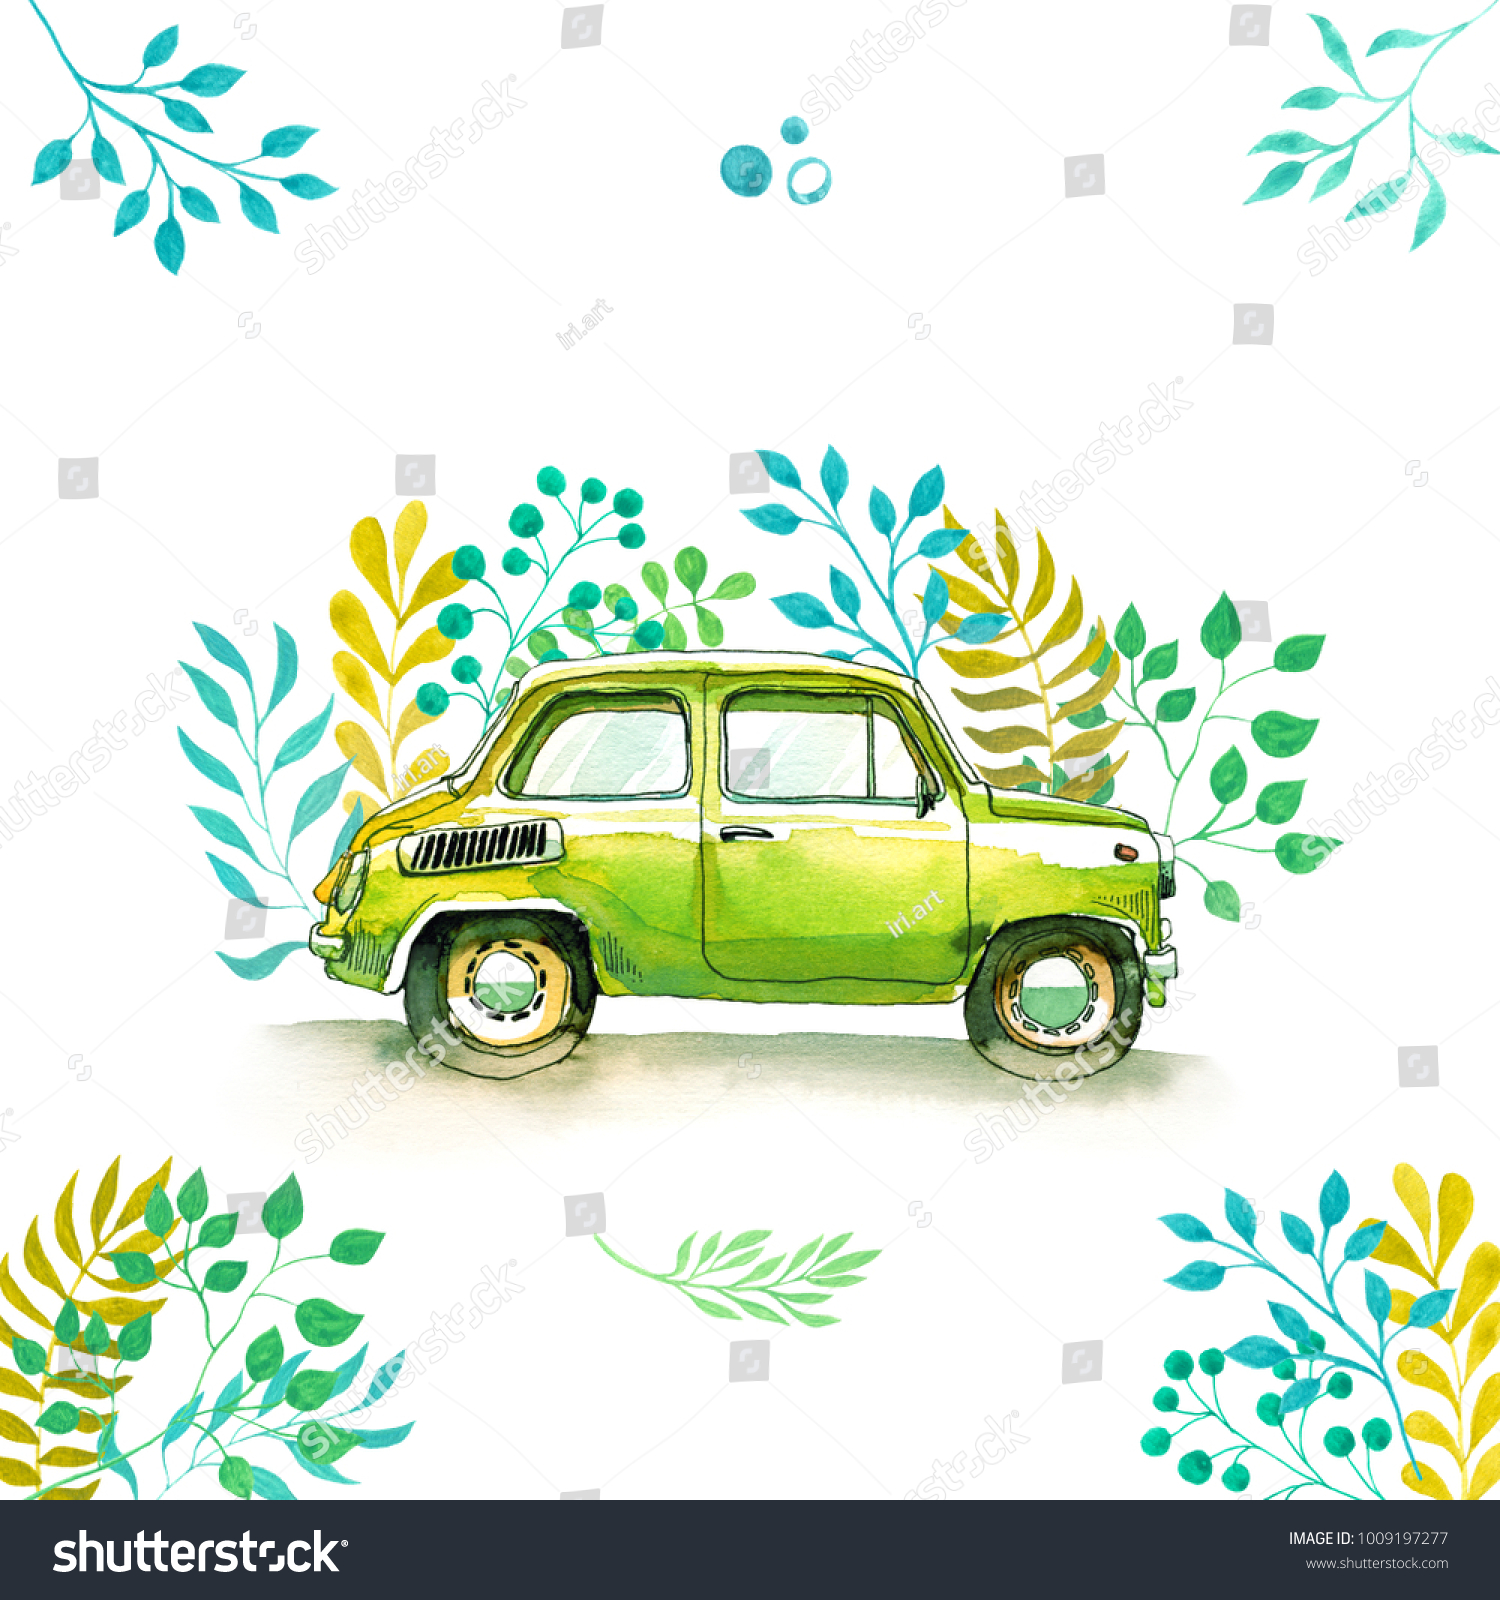 Watercolor Car Vintage Funny Watercolor Sketch Stock Illustration ...